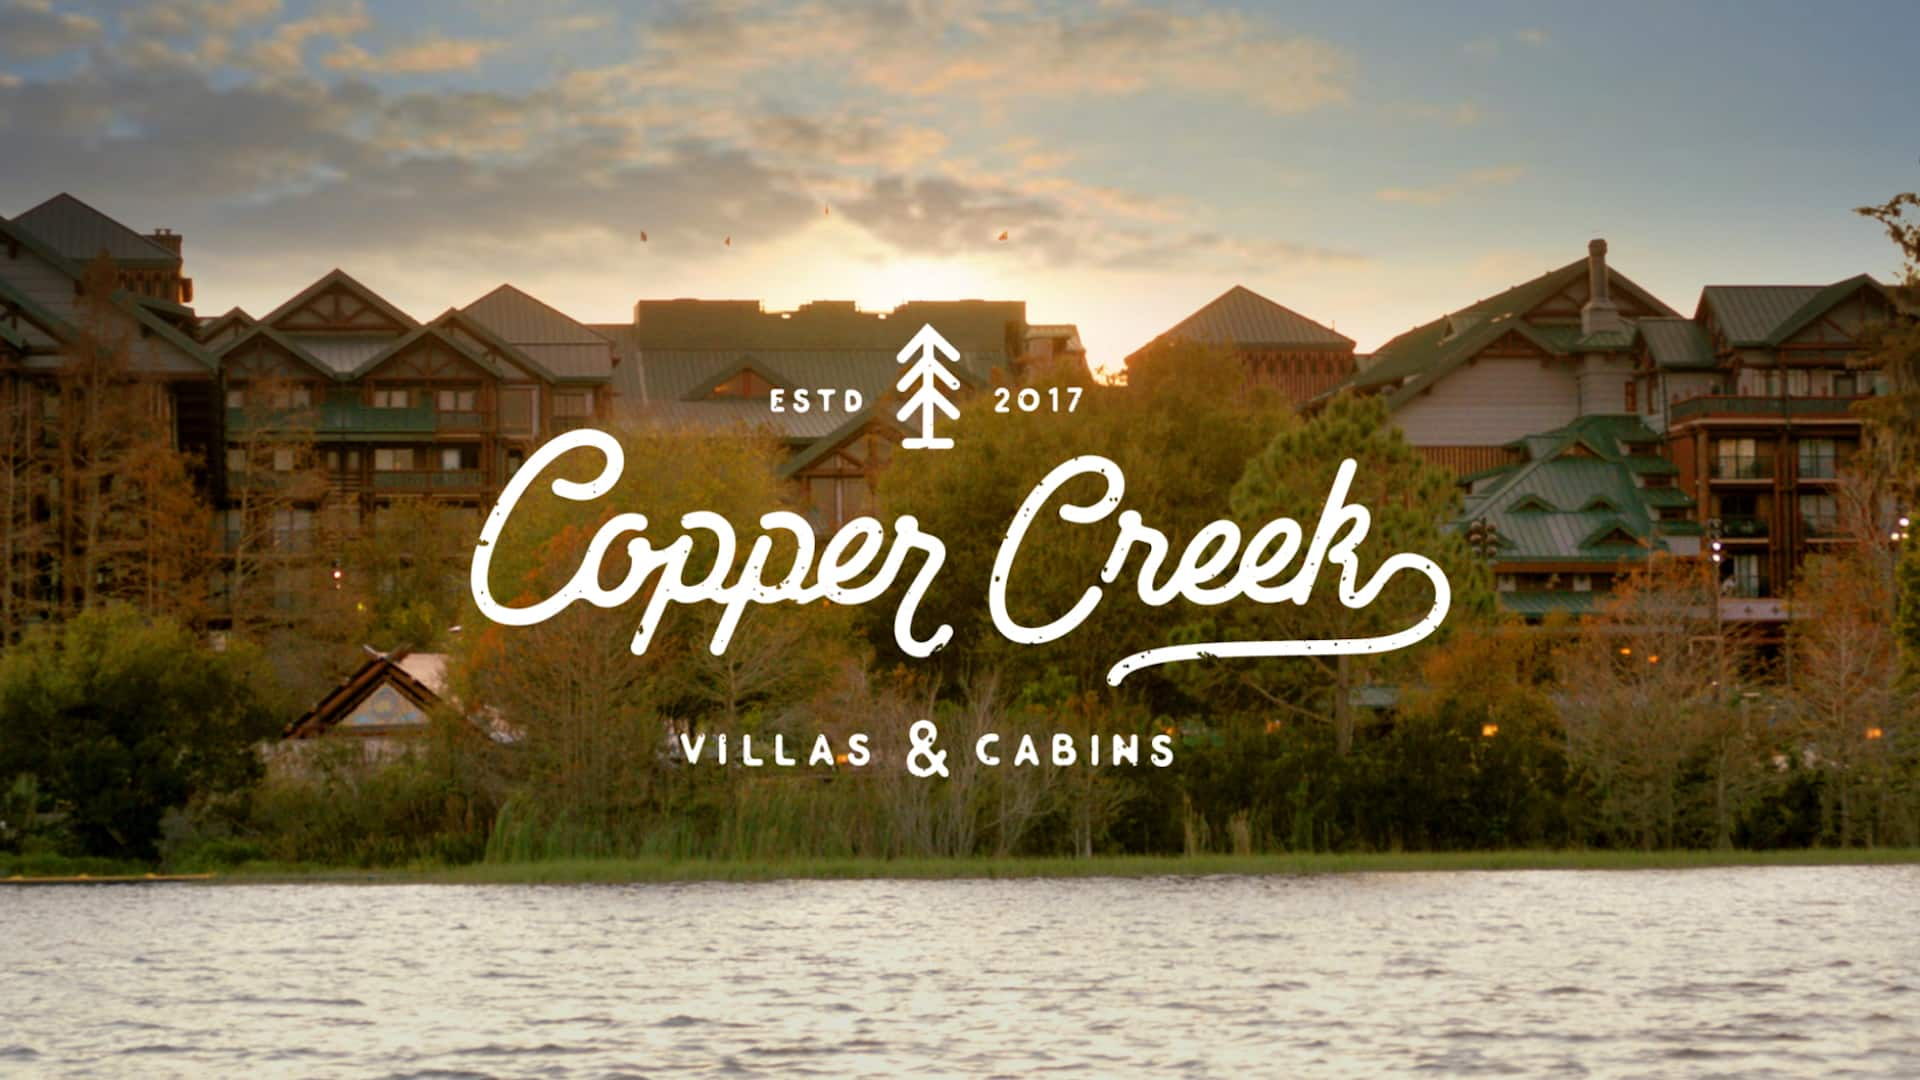 The exterior of Copper Creek Villas & Cabins at Disney's Wilderness Lodge